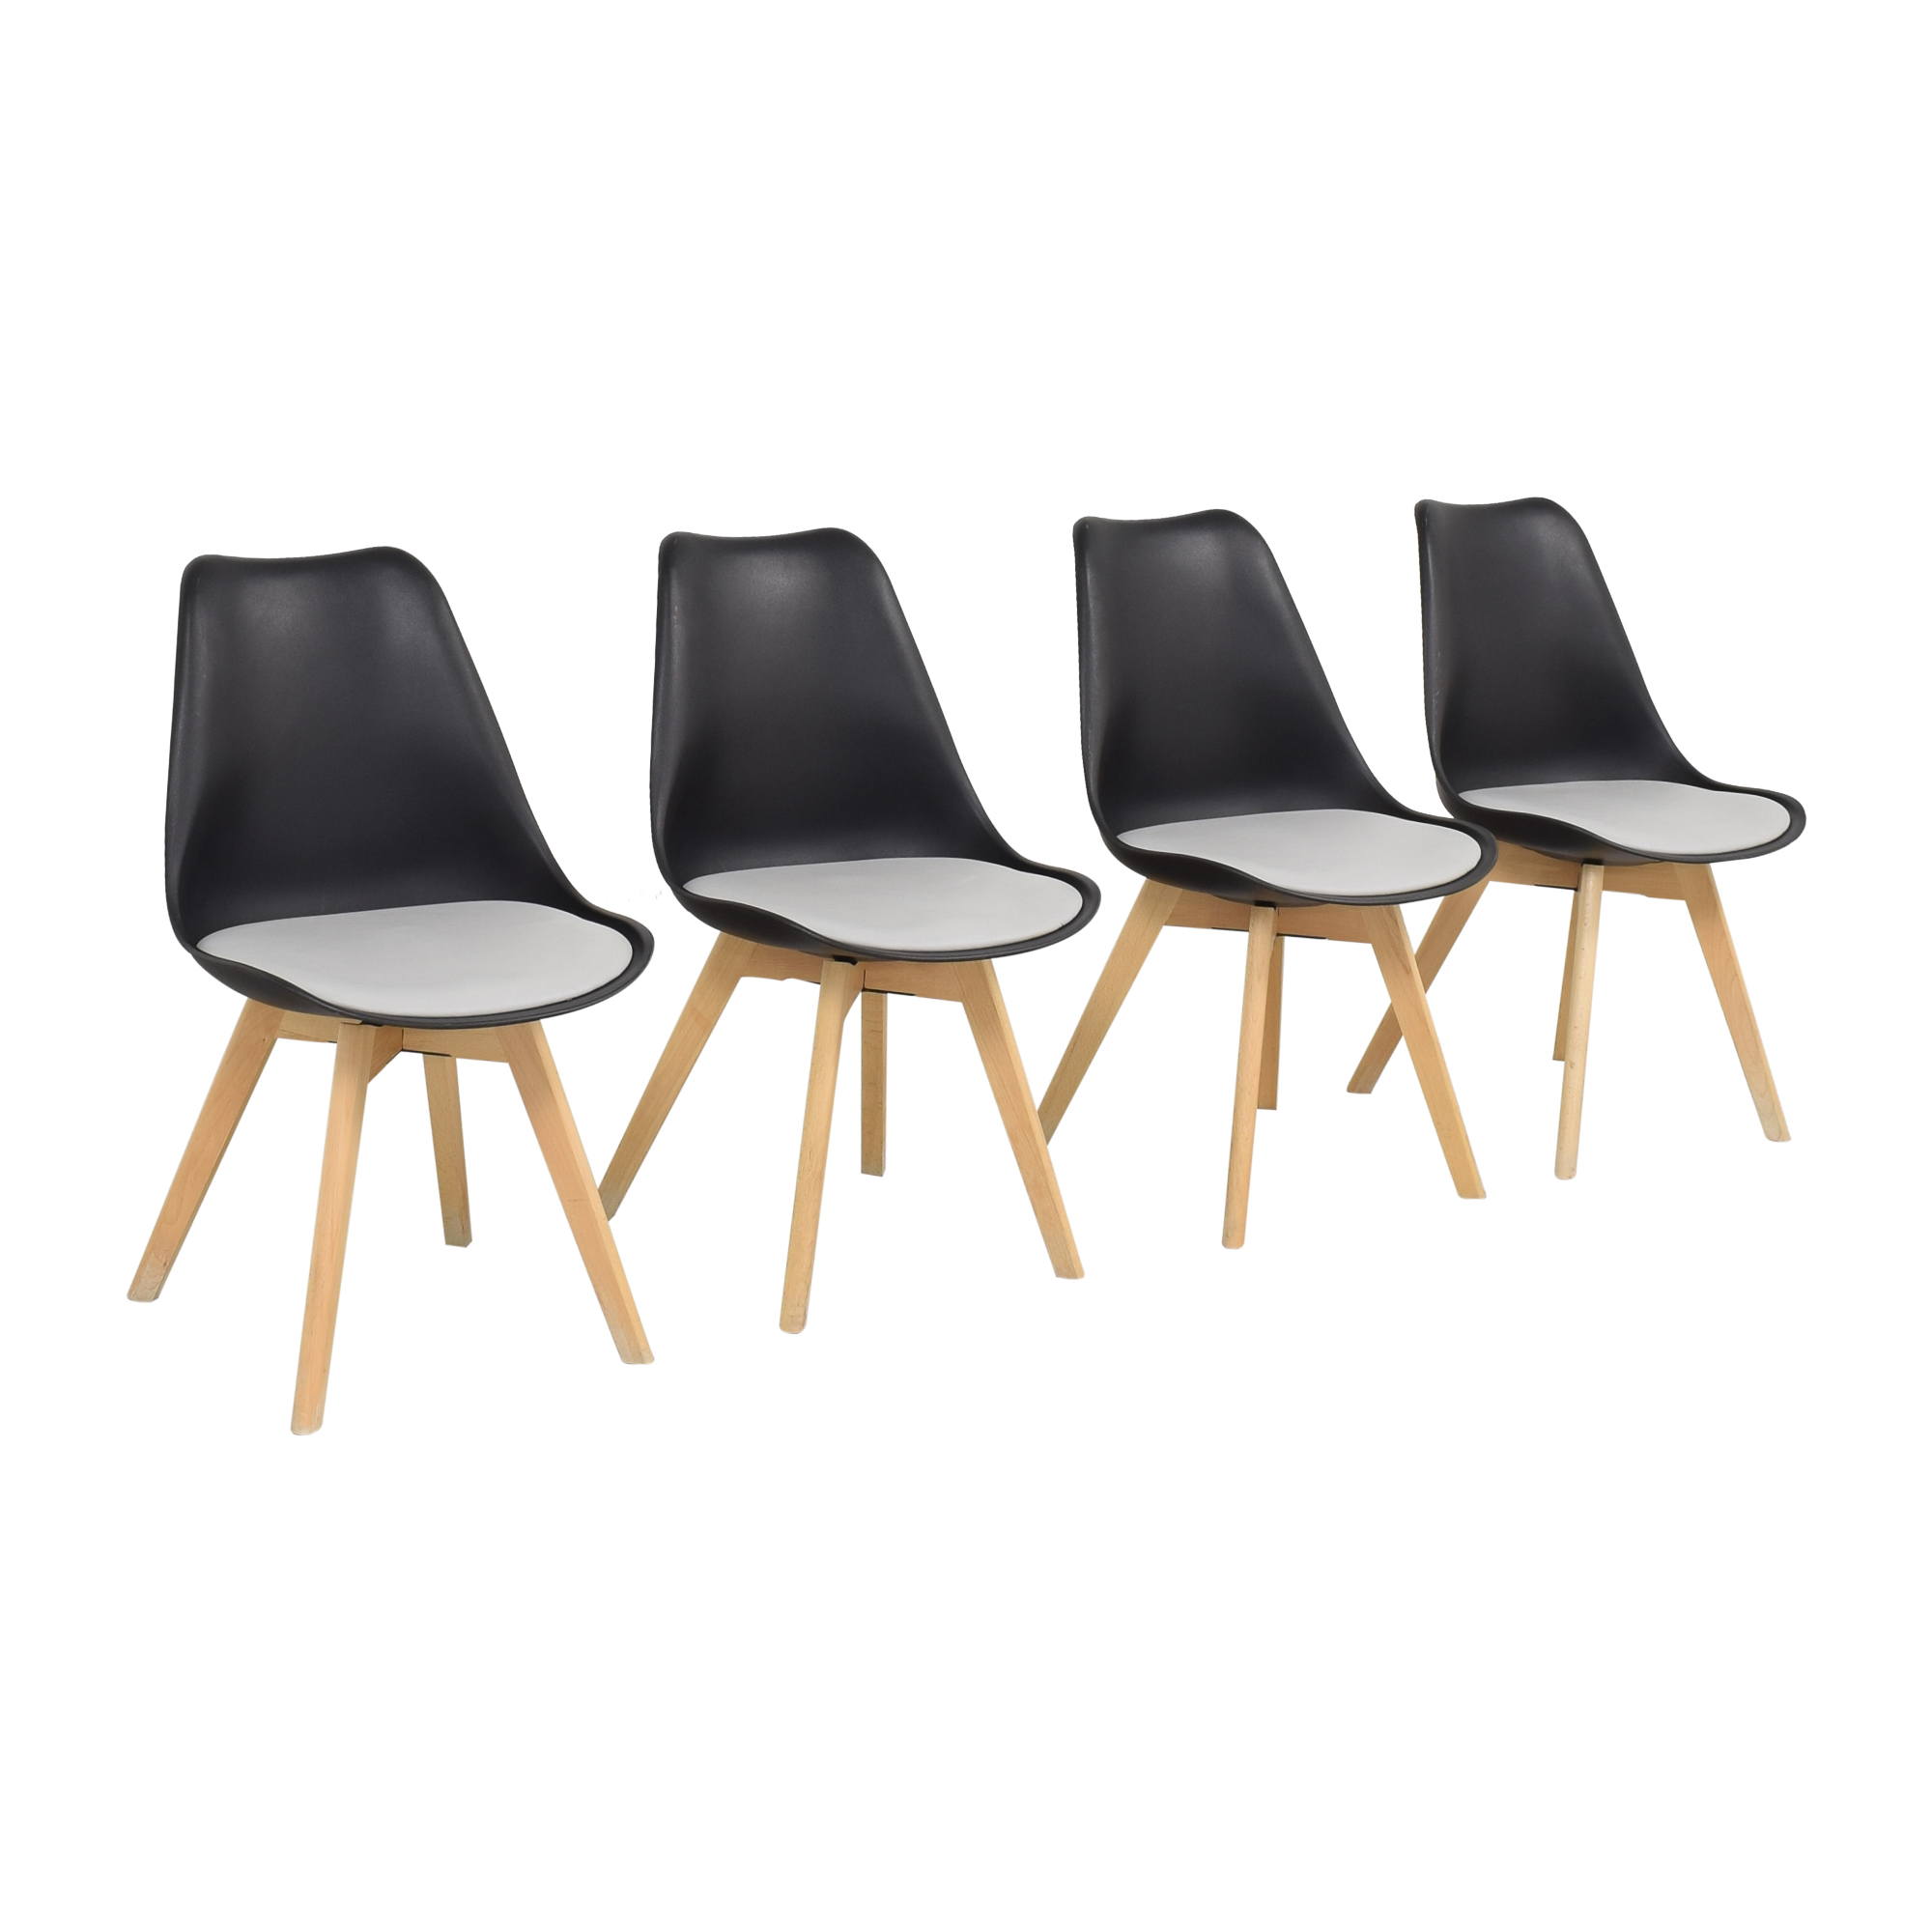 buy  Black Molded Plastic Chairs with Wooden Legs online